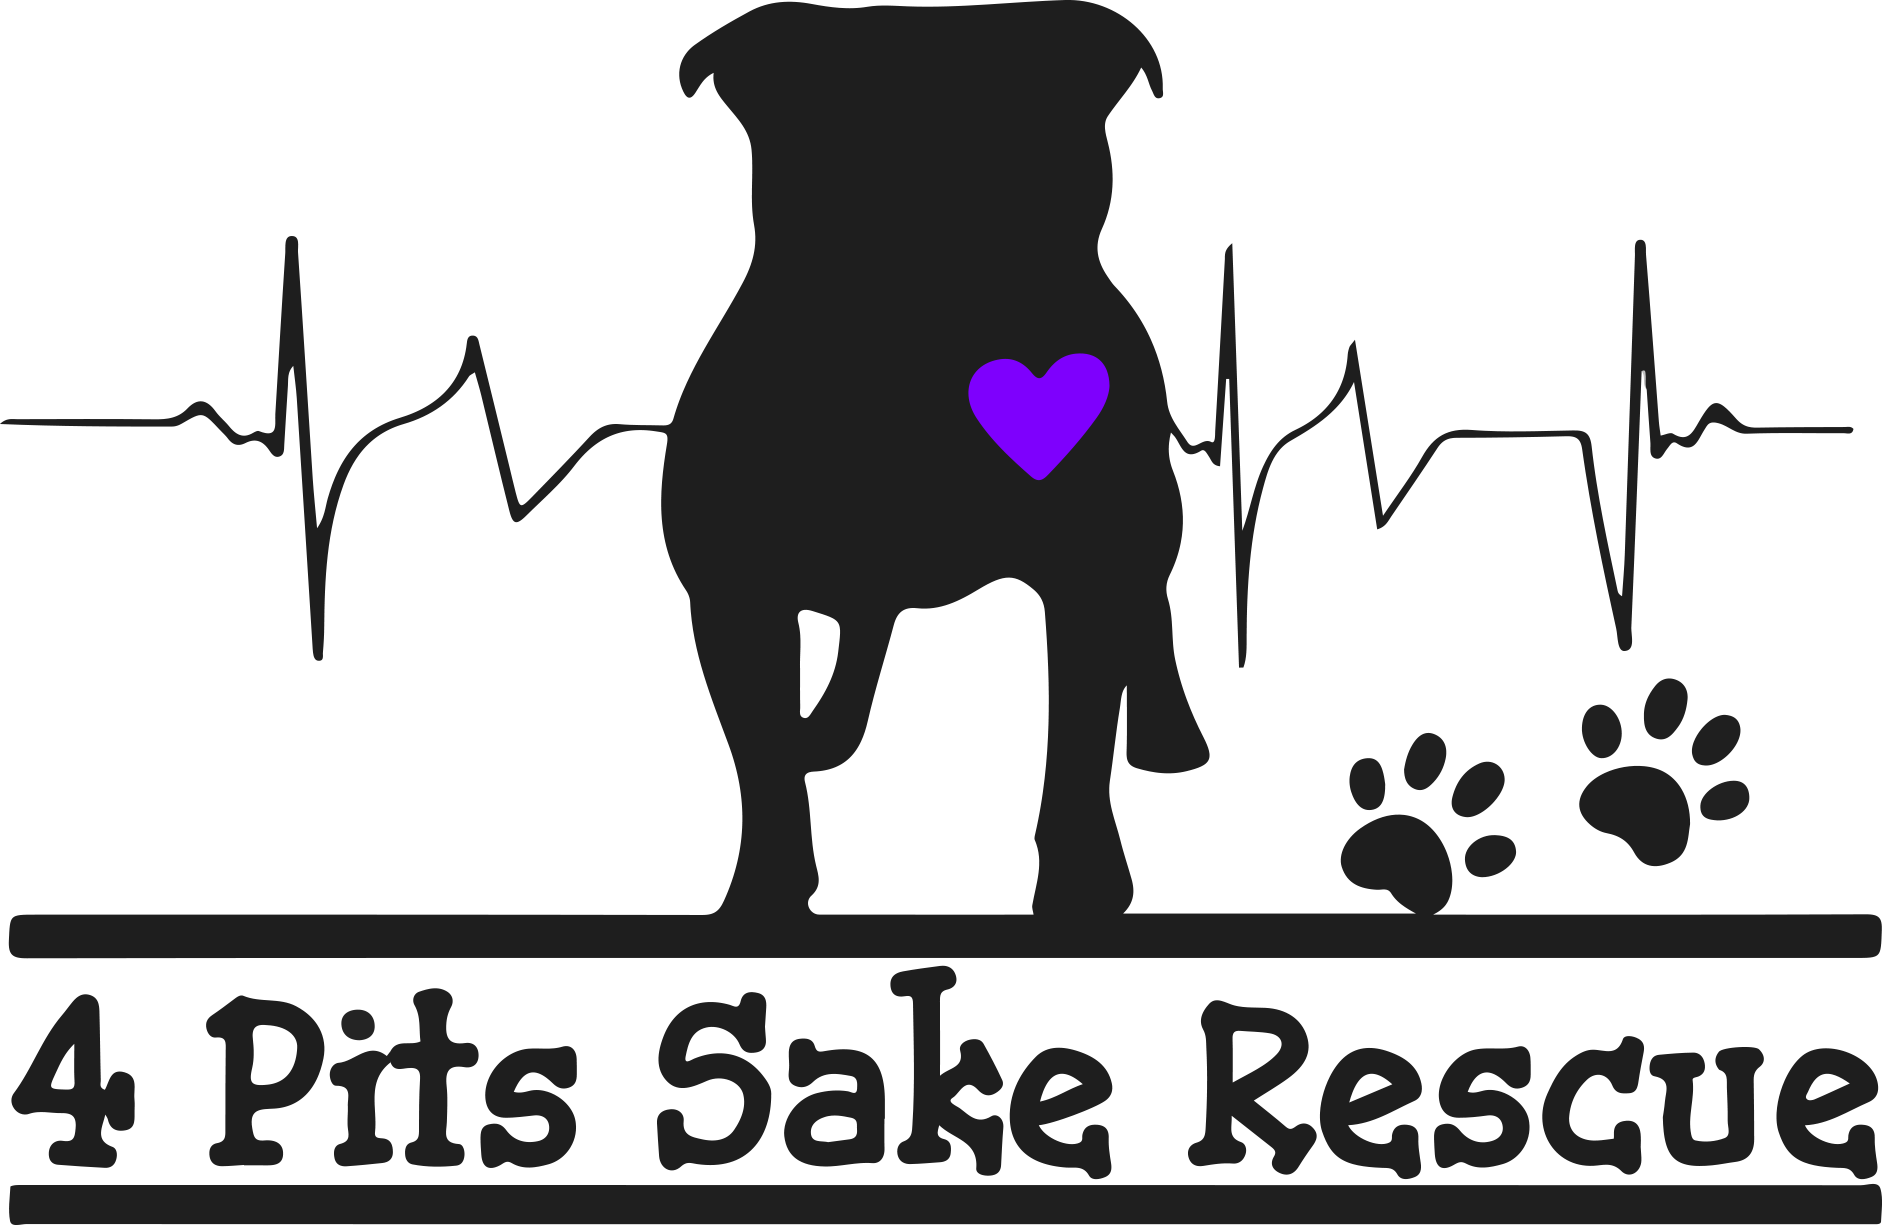 FosterHandbook - Know what to expect when fostering with 4 Pits Sake Rescue.